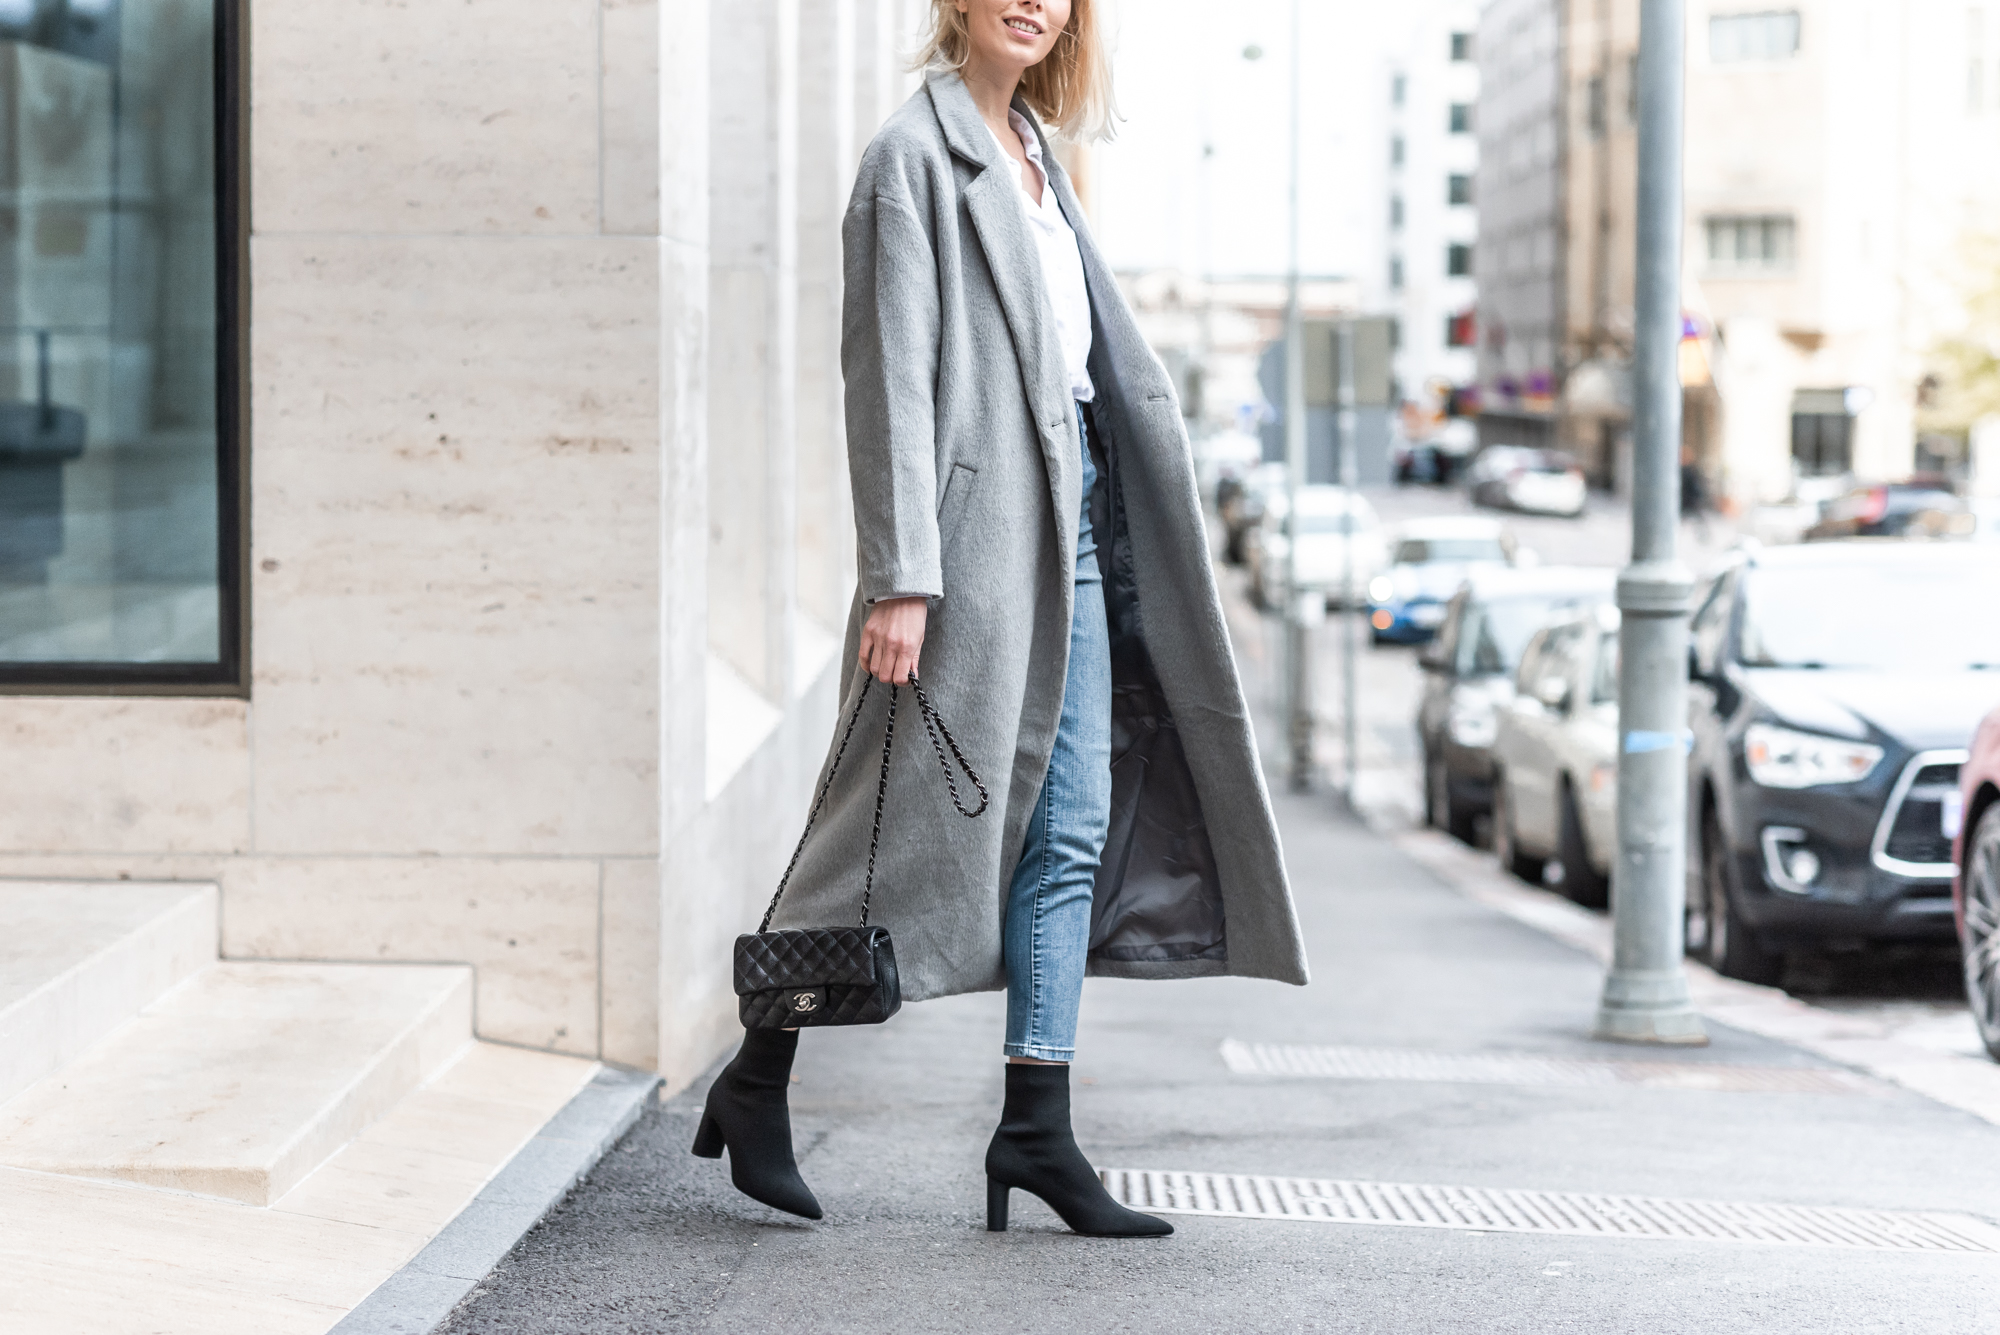 Anna Sofia Bubbleroom Grey Coat Fall 2018 Thomas Drouault 10